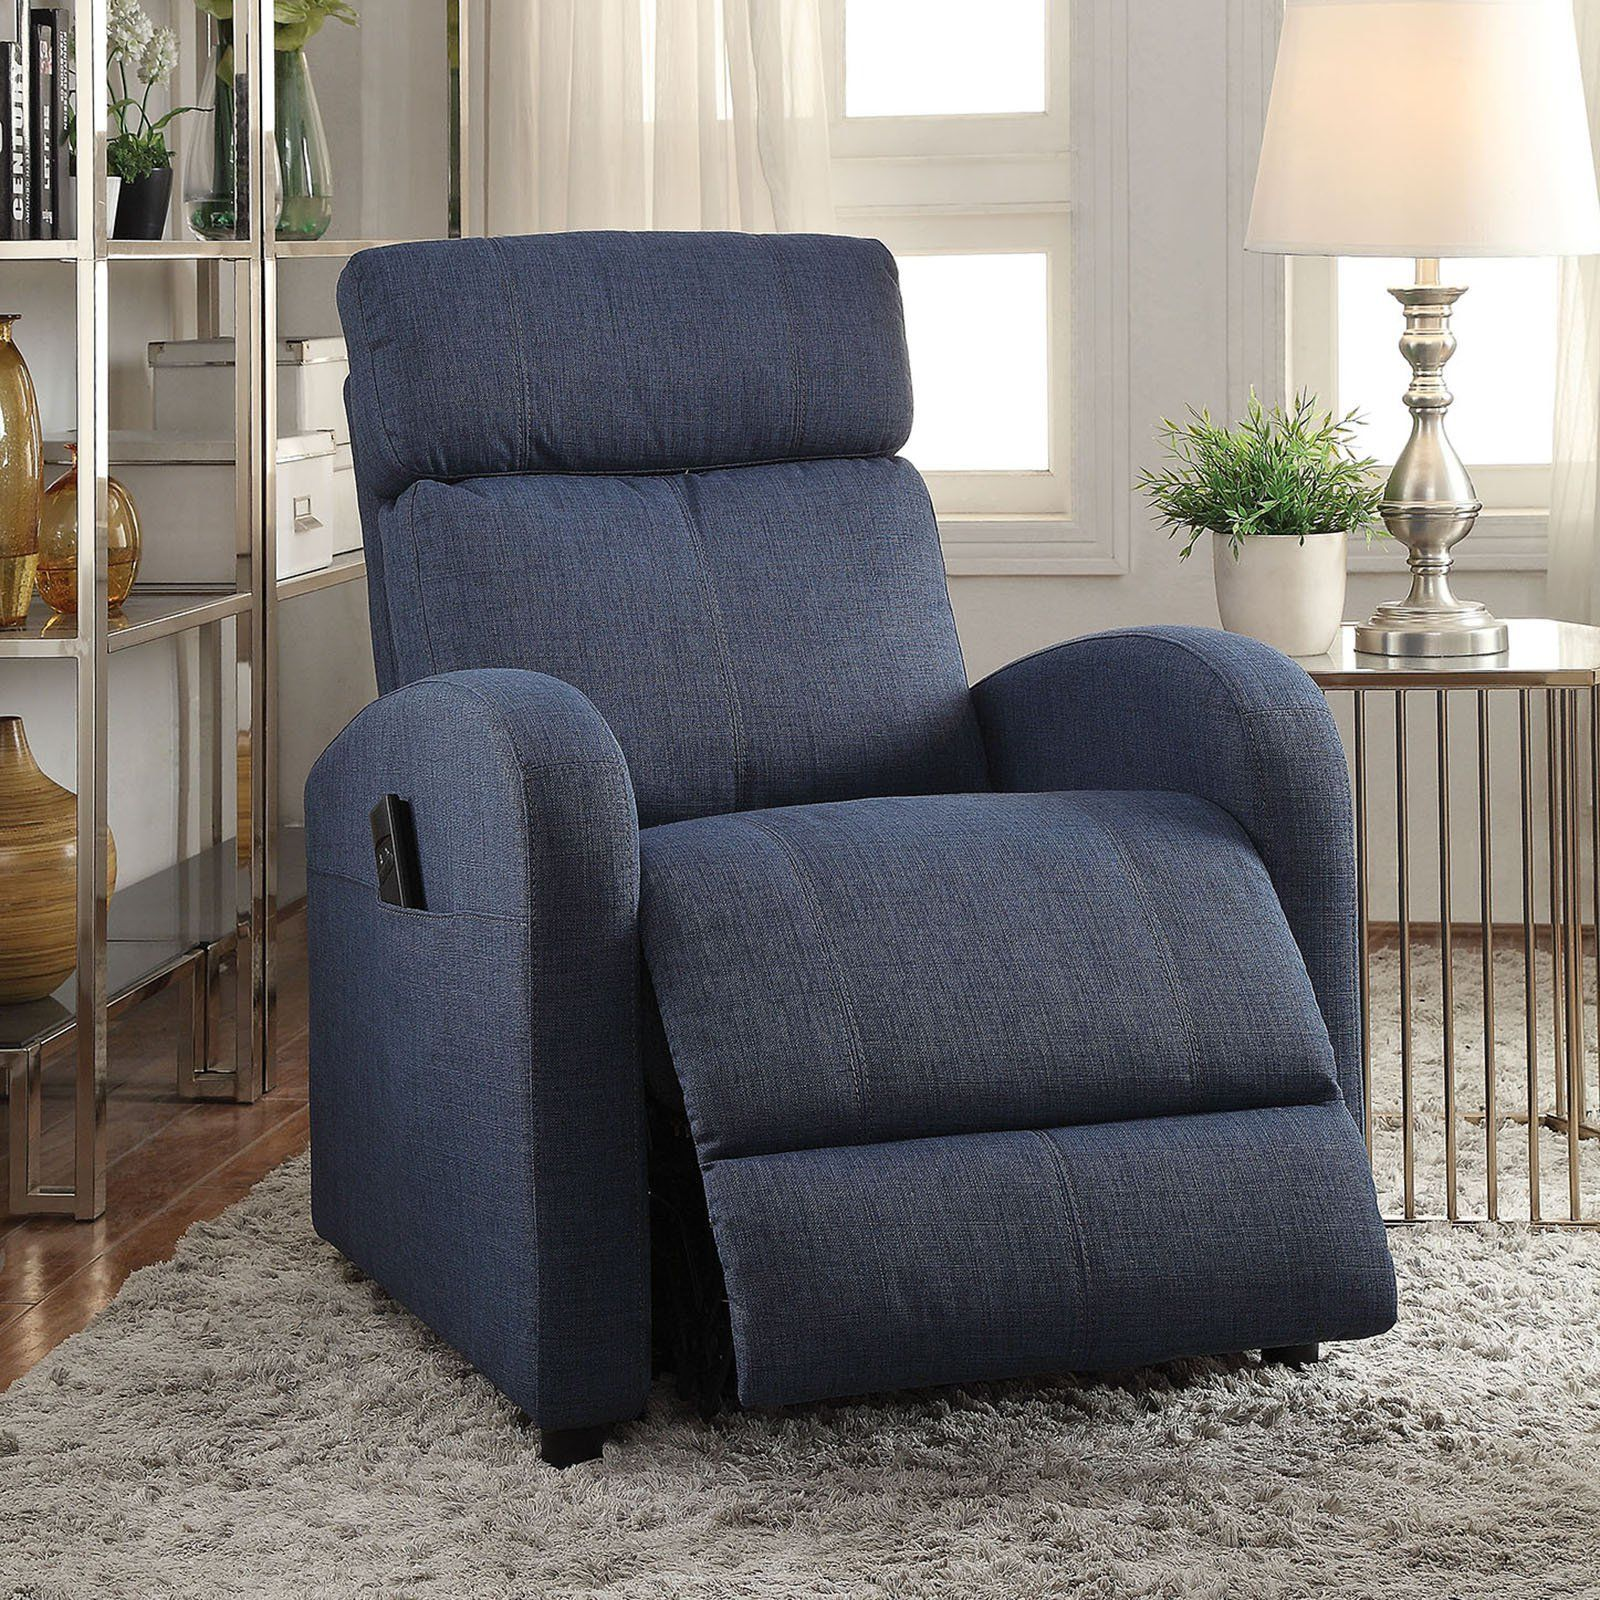 recliner chairs that lift. Acme Furniture Concha Power Lift Recliner - 59347 Chairs That